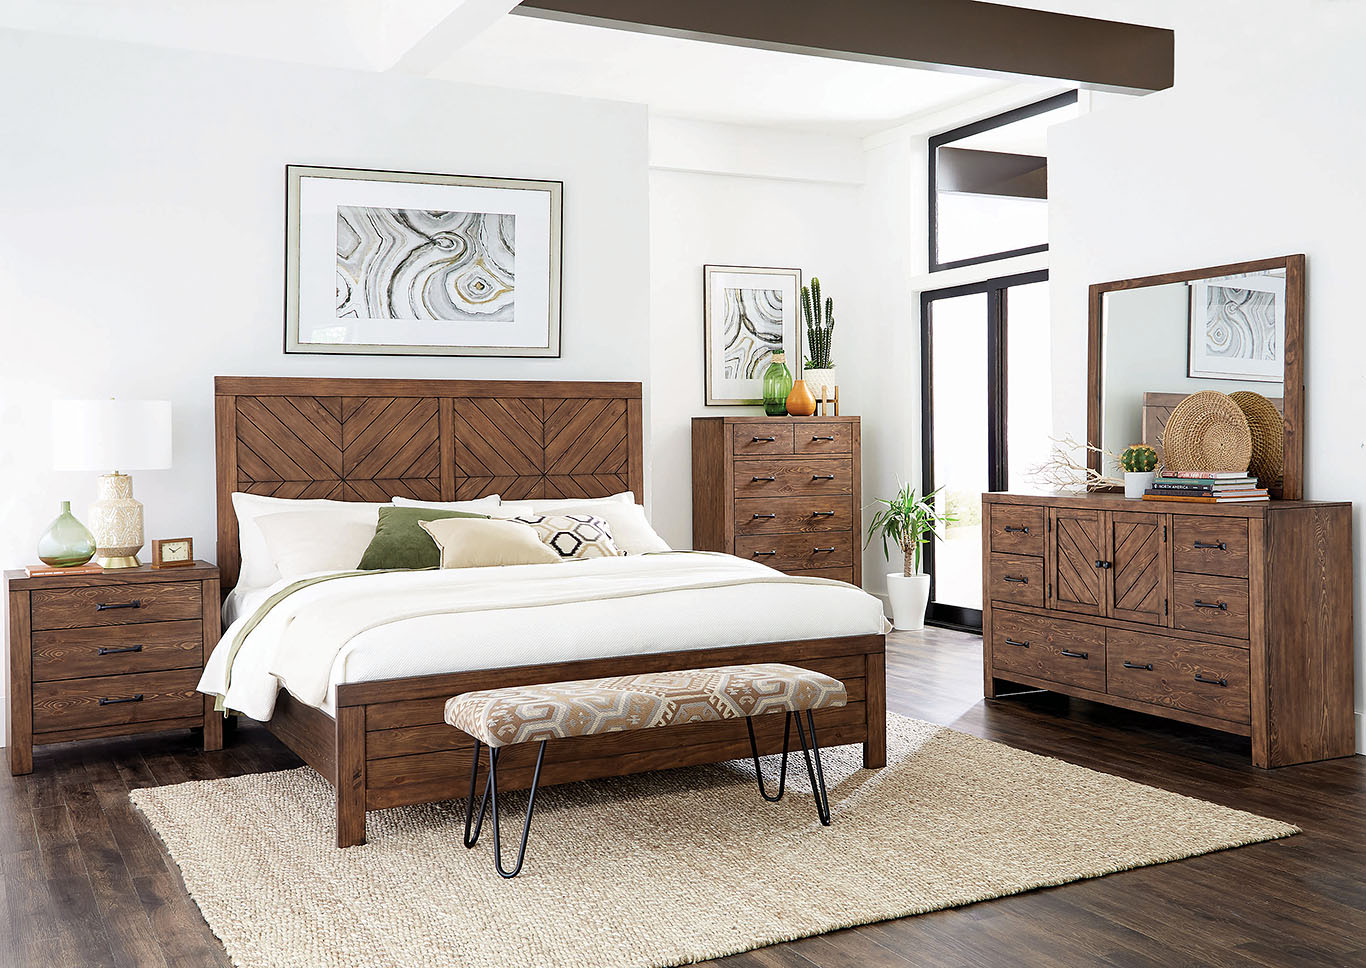 Reeves Mojave Brown Queen Bed,Coaster Furniture